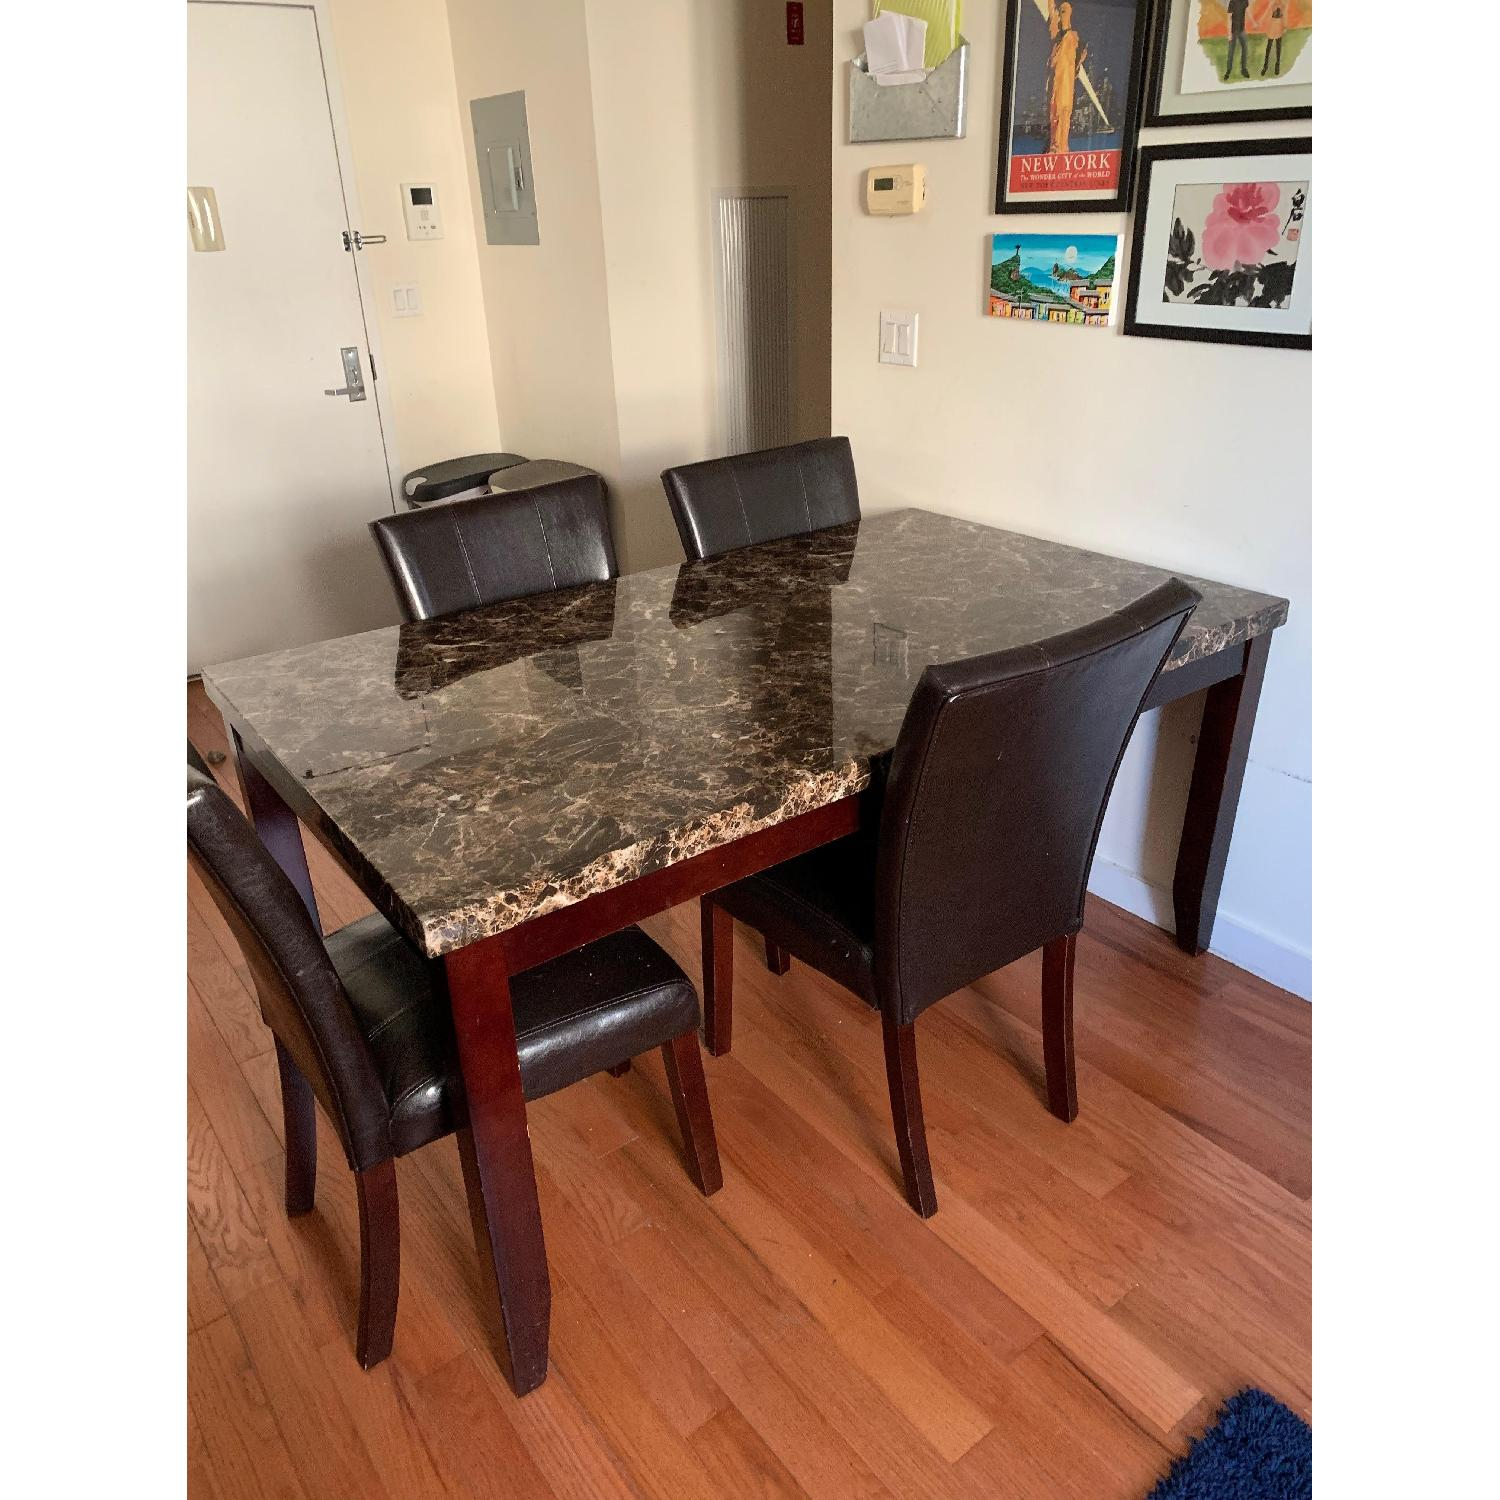 ... Marbleized Laminate And Wood Dining Table W/ 4 Chairs 2